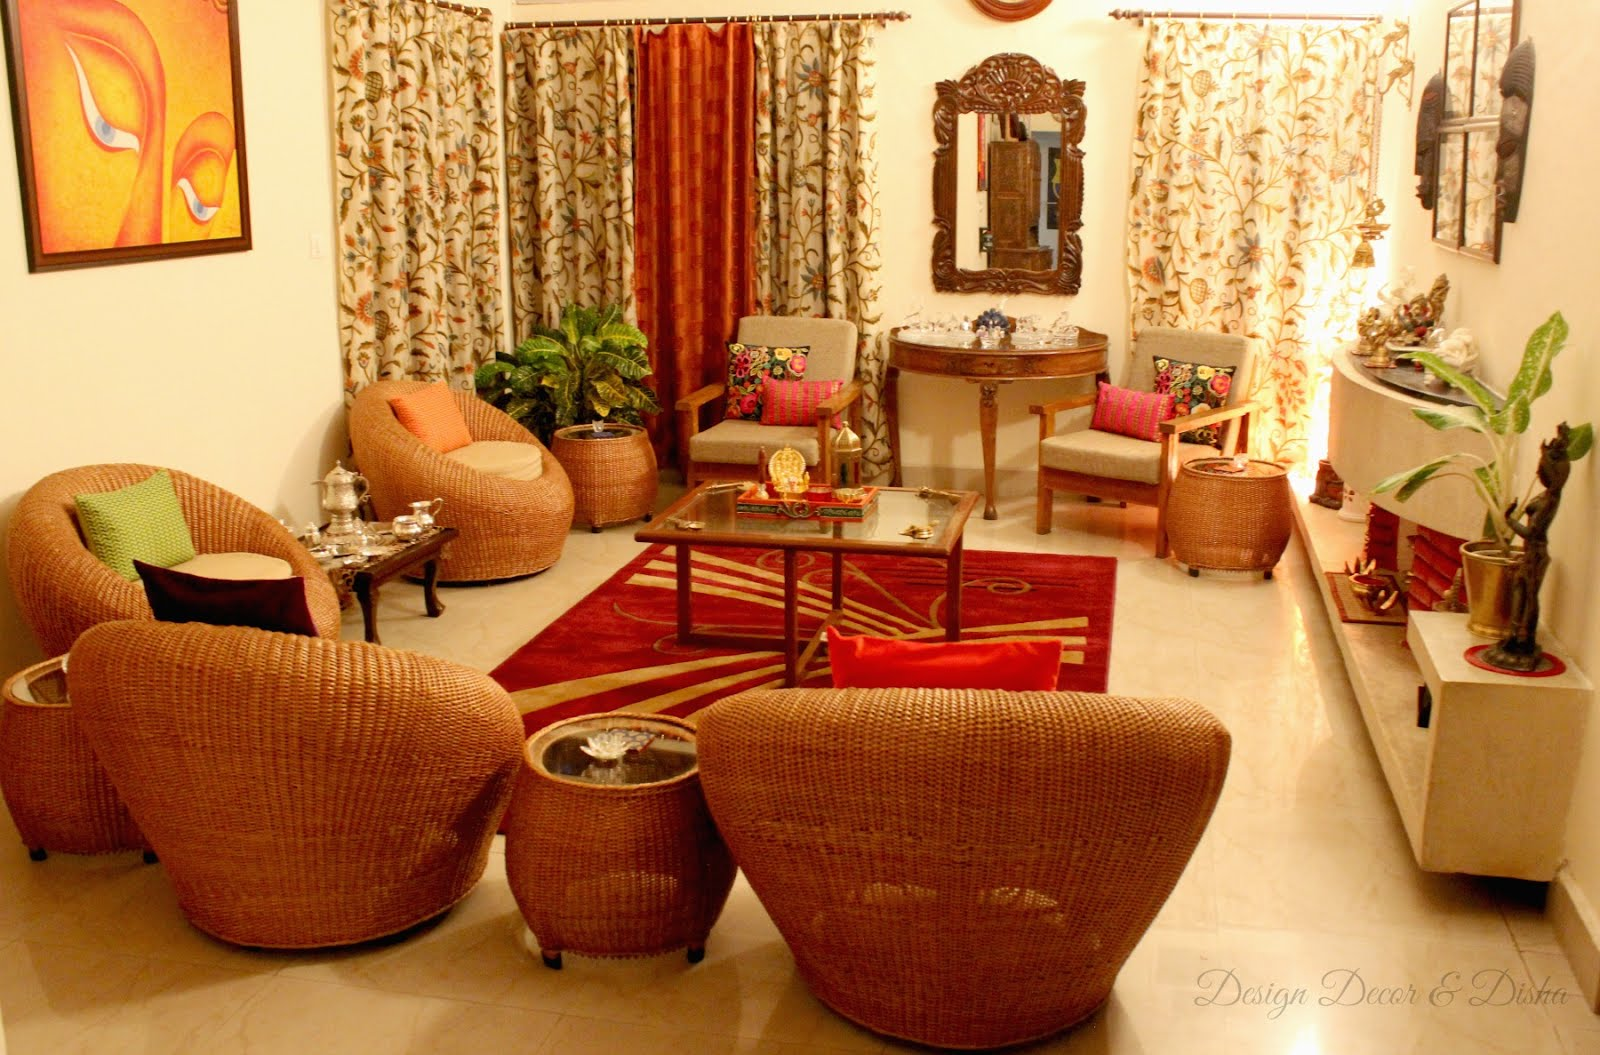 Design decor disha an indian design decor blog home tour parul chaturvedi - Online home decorating ideas ...